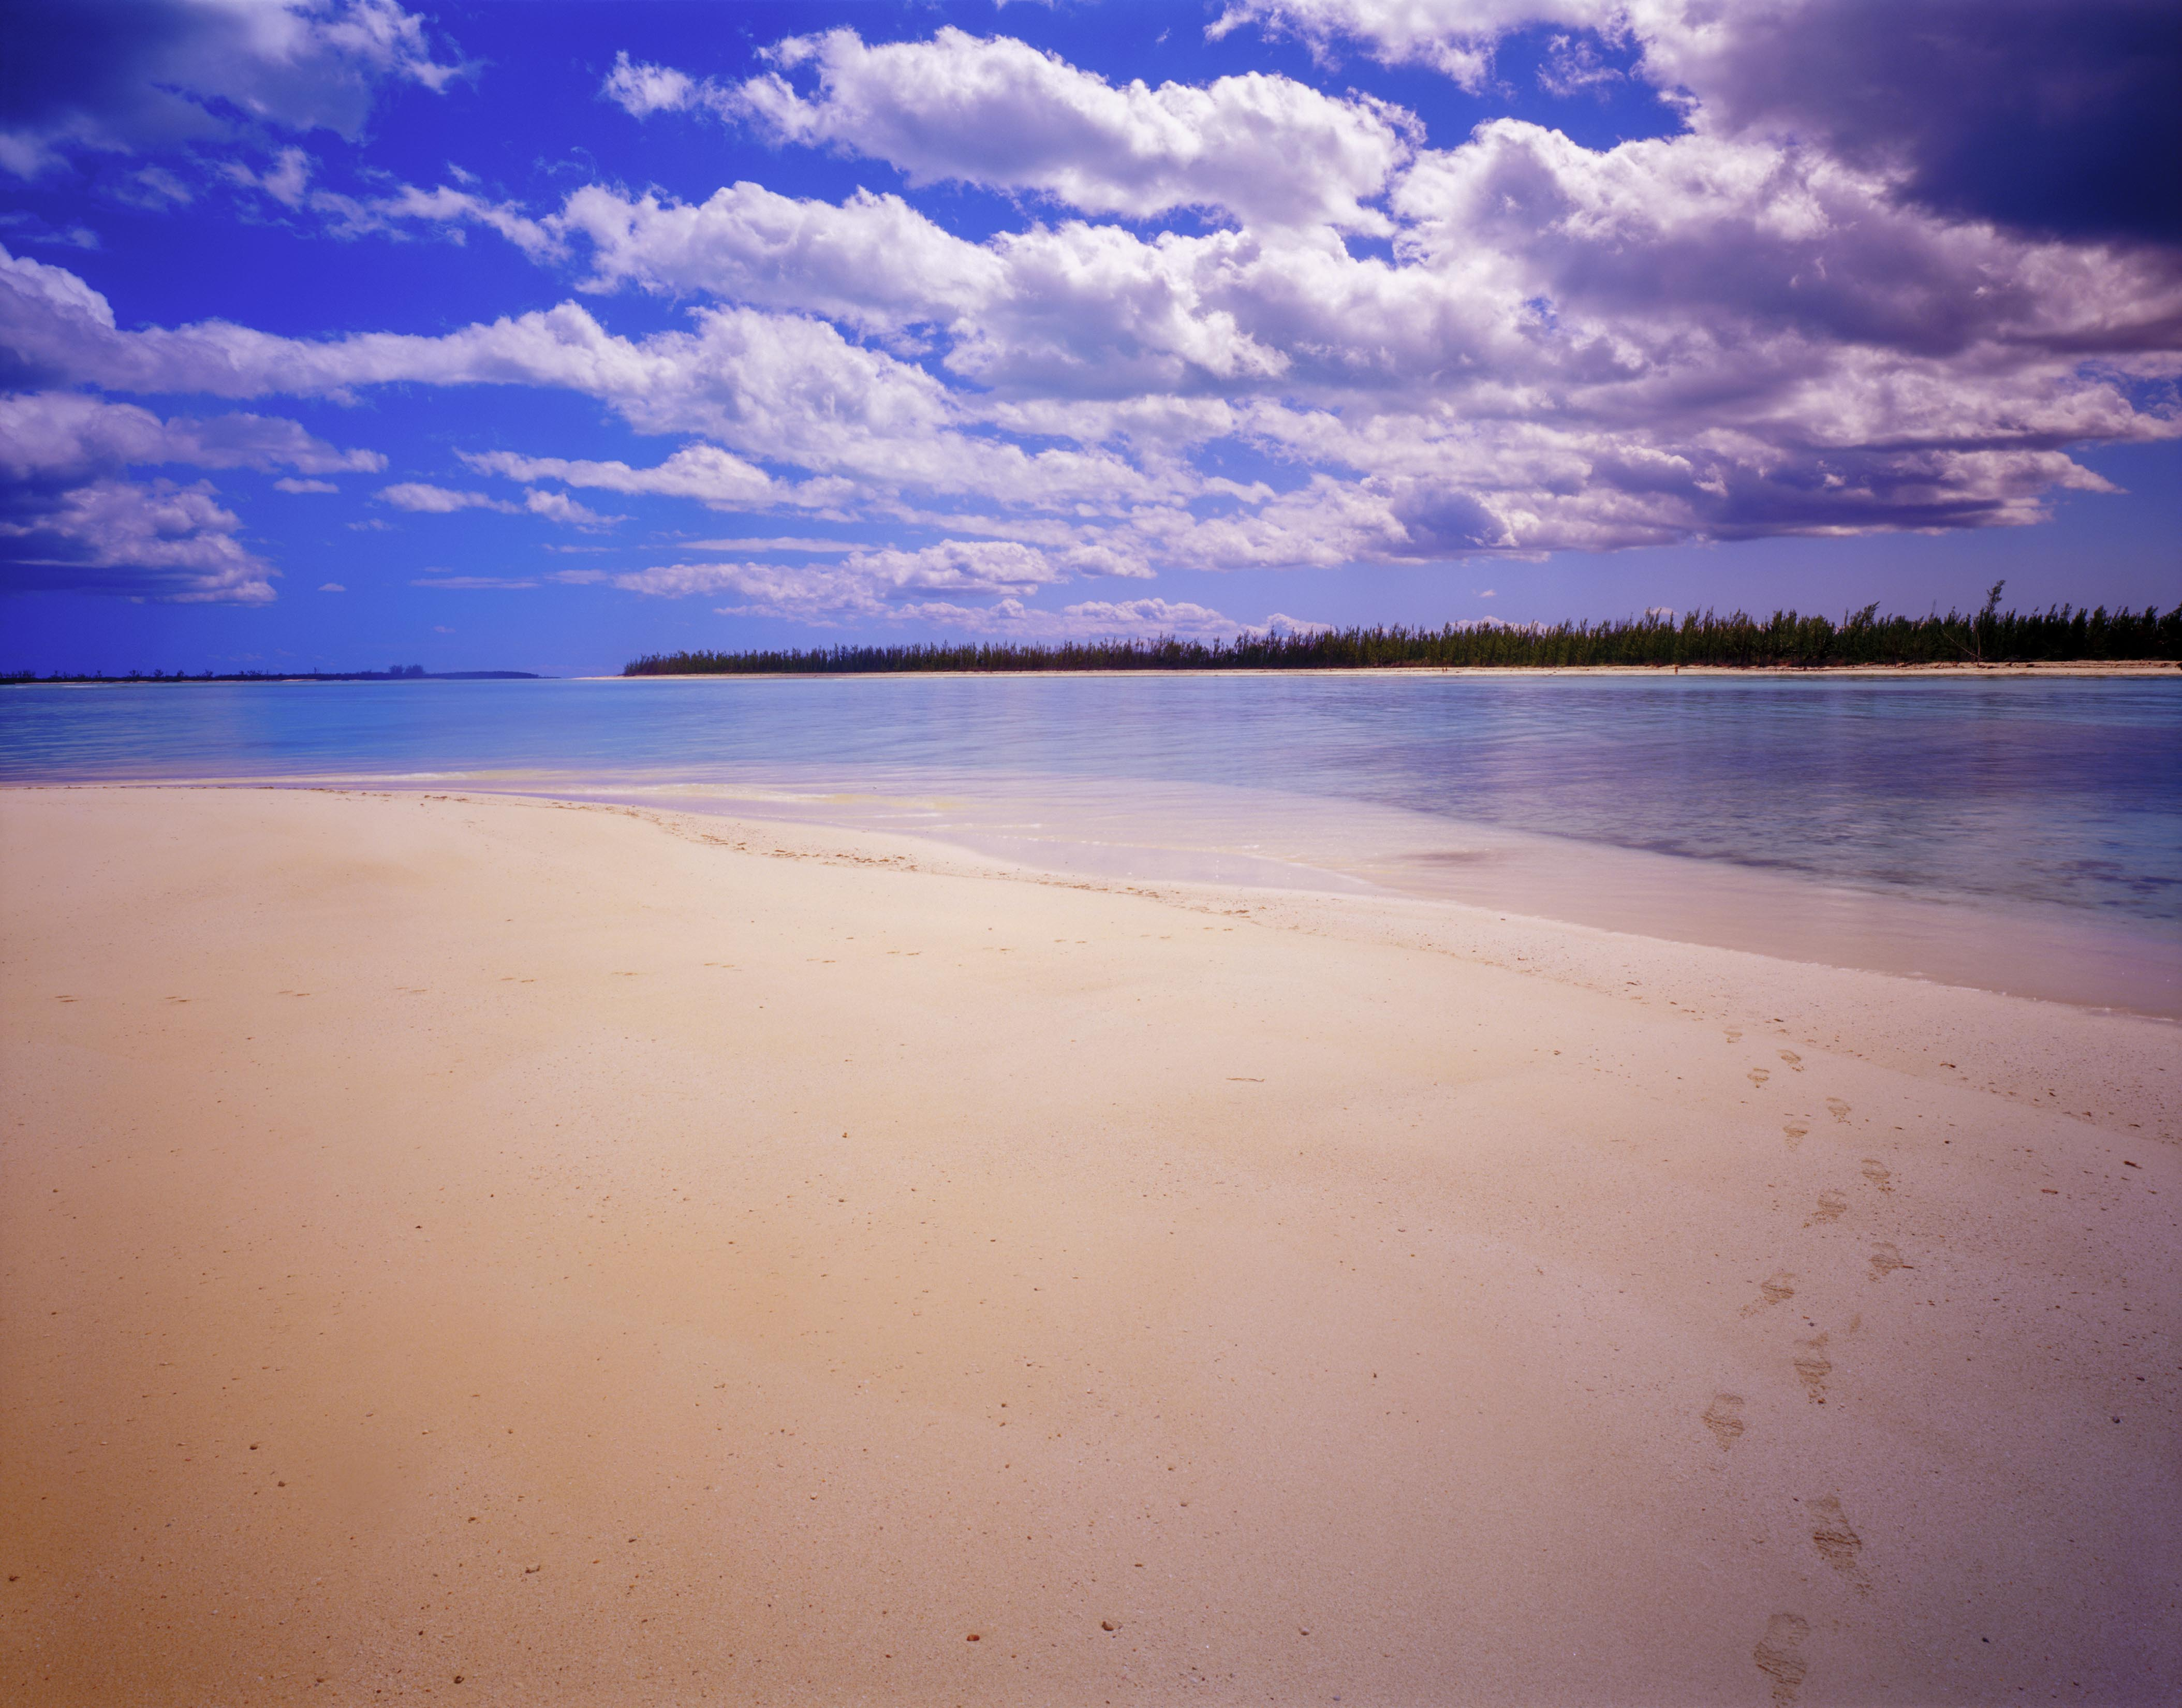 Green Turtle Cay, Abaco Islands, Bahamas photographed by Tom Till